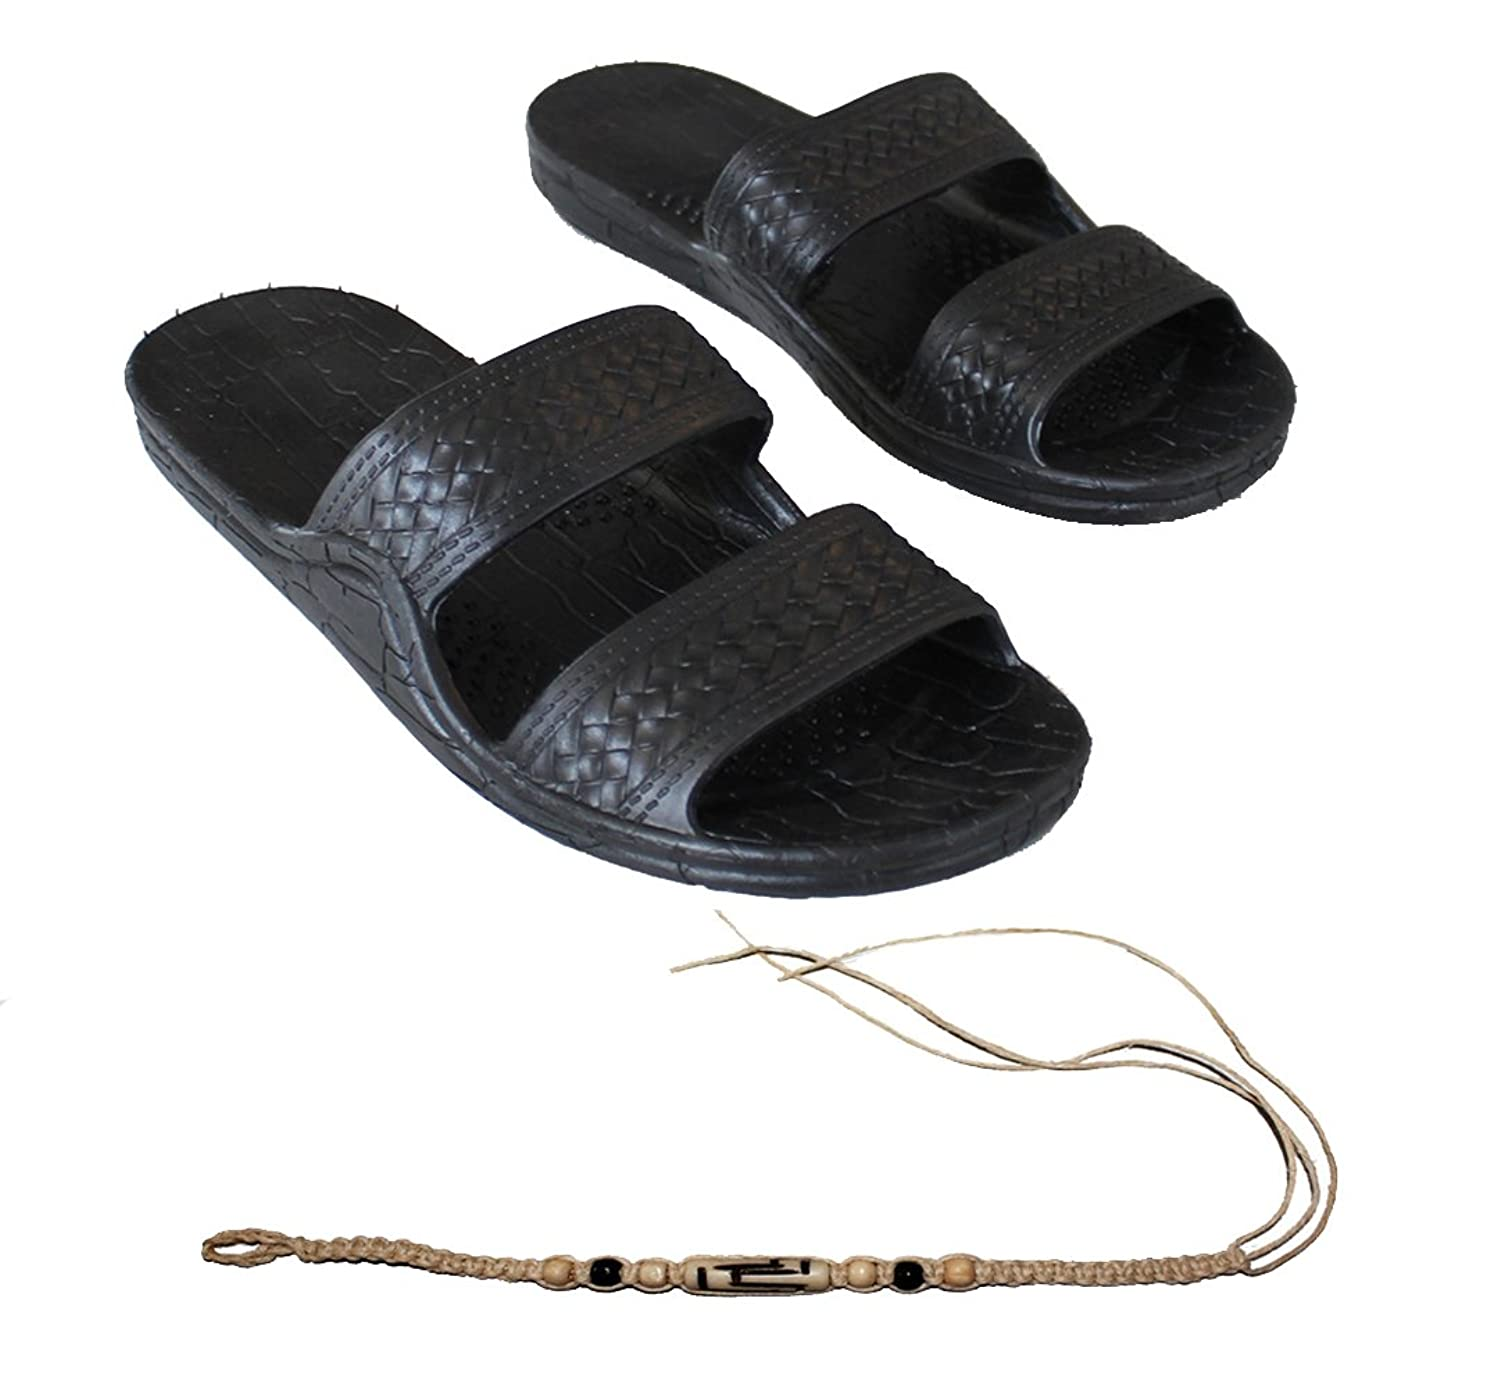 Rubber Double Strap Jesus Style Sandals Imperial Brand - with 1 Braided Natural Hemp Anklet Bracelet Bundle - 2 Items